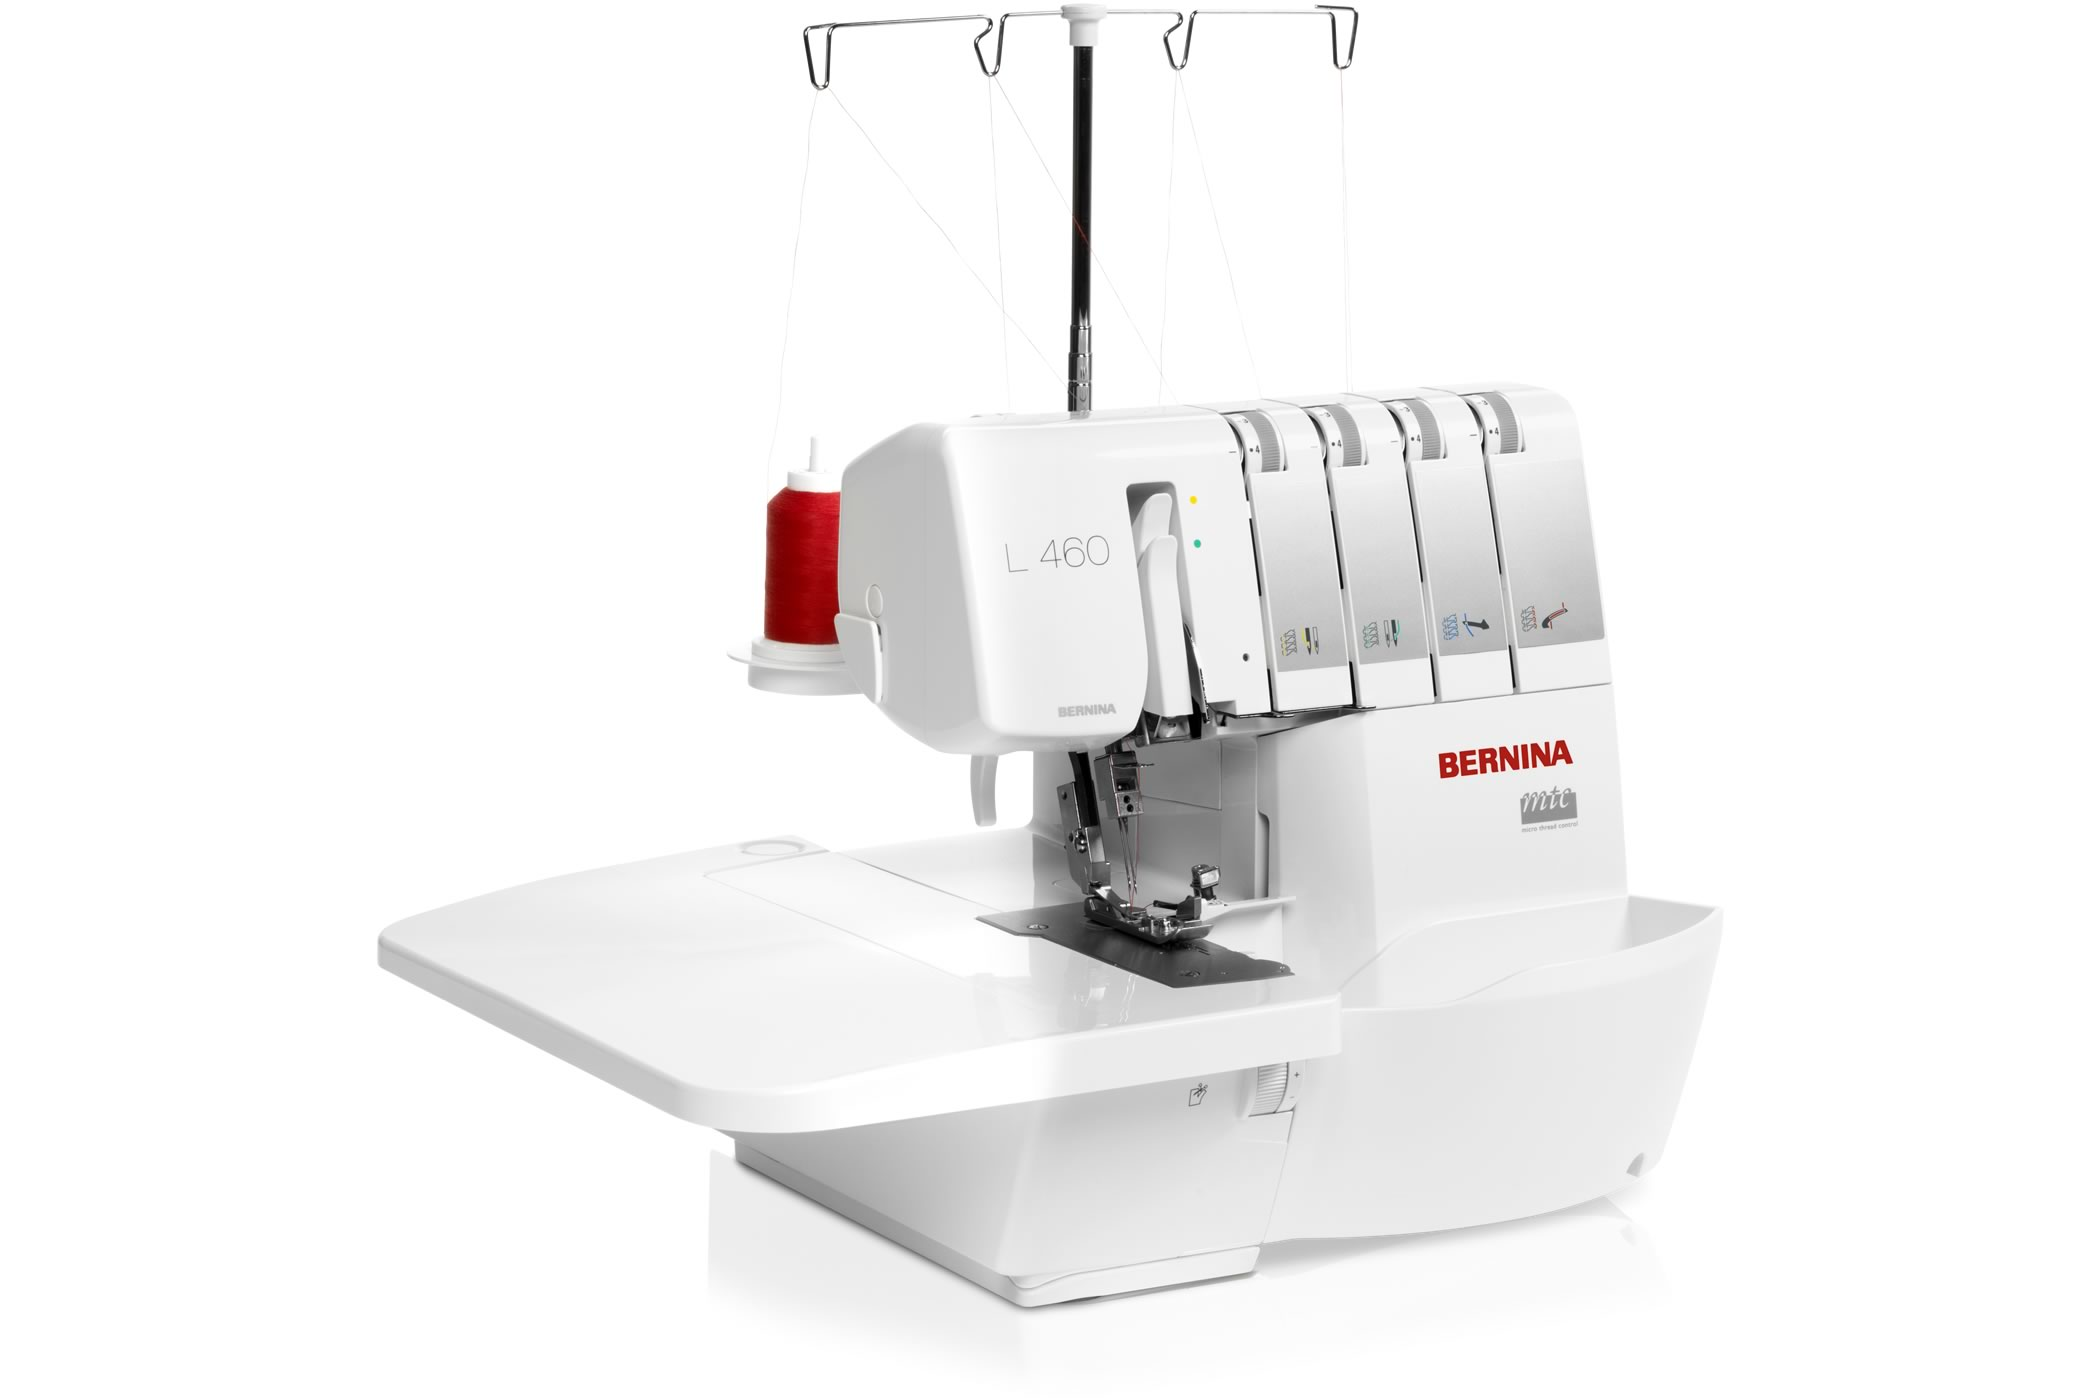 BERNINA Overlok makinesi